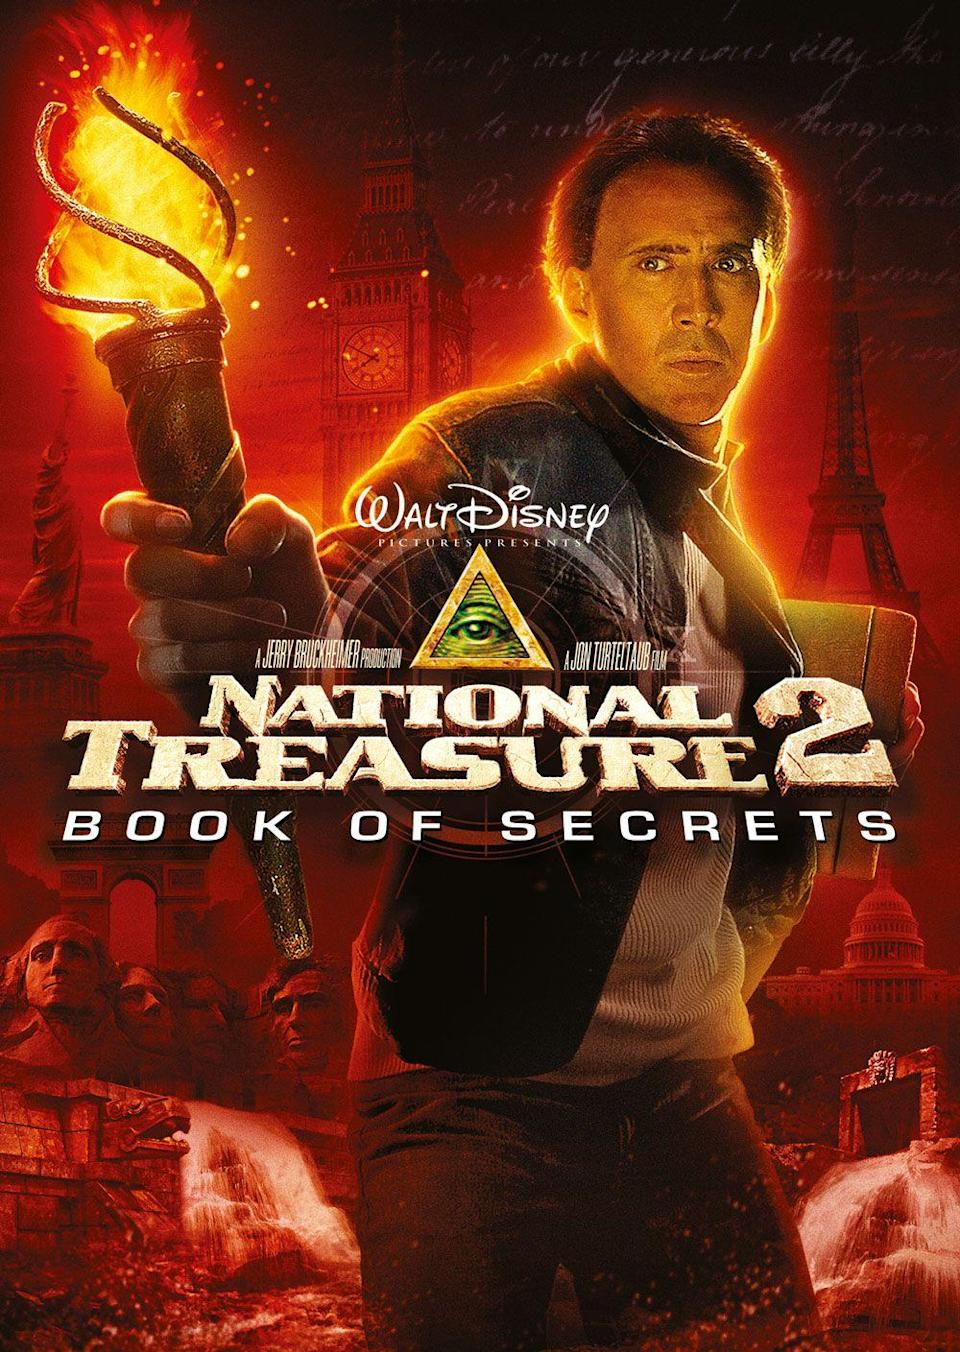 """<p>Make it a double feature by watching <em>National Treasure</em> and <em>National Treasure: Book of Secrets</em>. In the sequel, Ben sets out to find a lost city of gold and prove that his ancestor was not responsible for the tragic death of Abraham Lincoln. </p><p><a class=""""link rapid-noclick-resp"""" href=""""https://go.redirectingat.com?id=74968X1596630&url=https%3A%2F%2Fwww.disneyplus.com%2Fmovies%2Fnational-treasure-book-of-secrets%2F4KxFDxqZdOHA&sref=https%3A%2F%2Fwww.womansday.com%2Flife%2Fentertainment%2Fg36156094%2F4th-of-july-movies%2F"""" rel=""""nofollow noopener"""" target=""""_blank"""" data-ylk=""""slk:STREAM NOW"""">STREAM NOW</a><br></p>"""